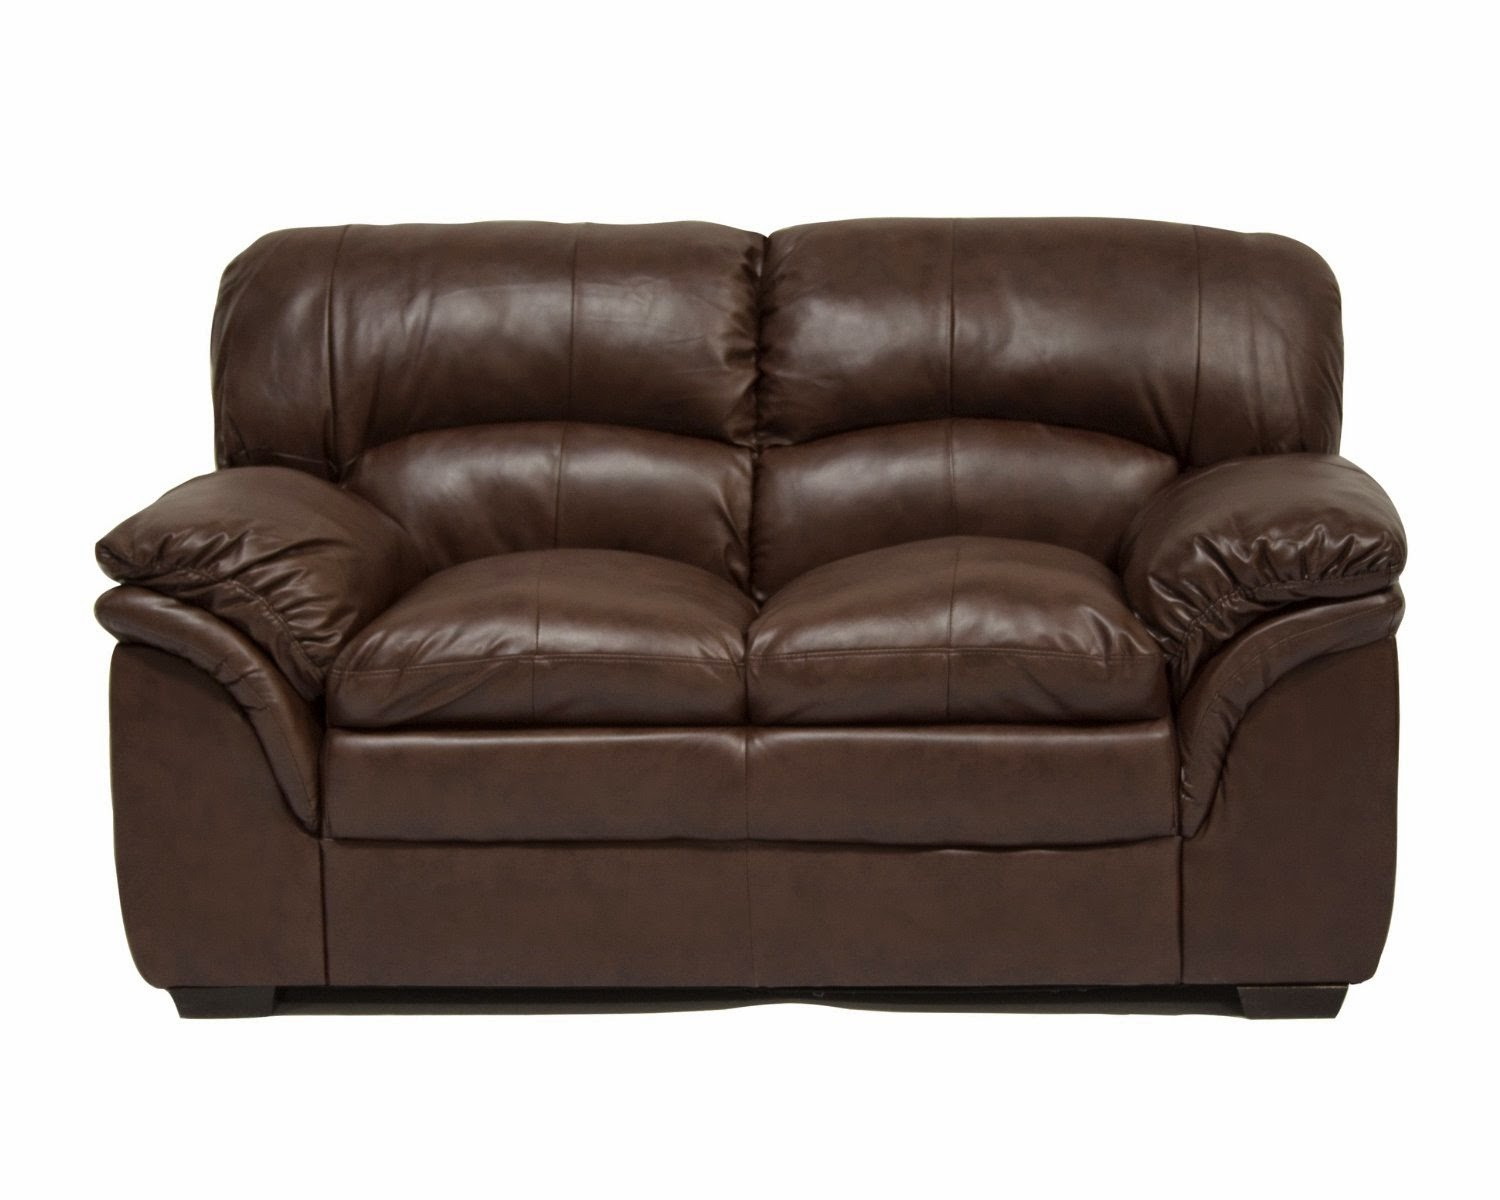 Leather recliner sofas sale cheap reclining sofas sale 2 for Tan couches for sale